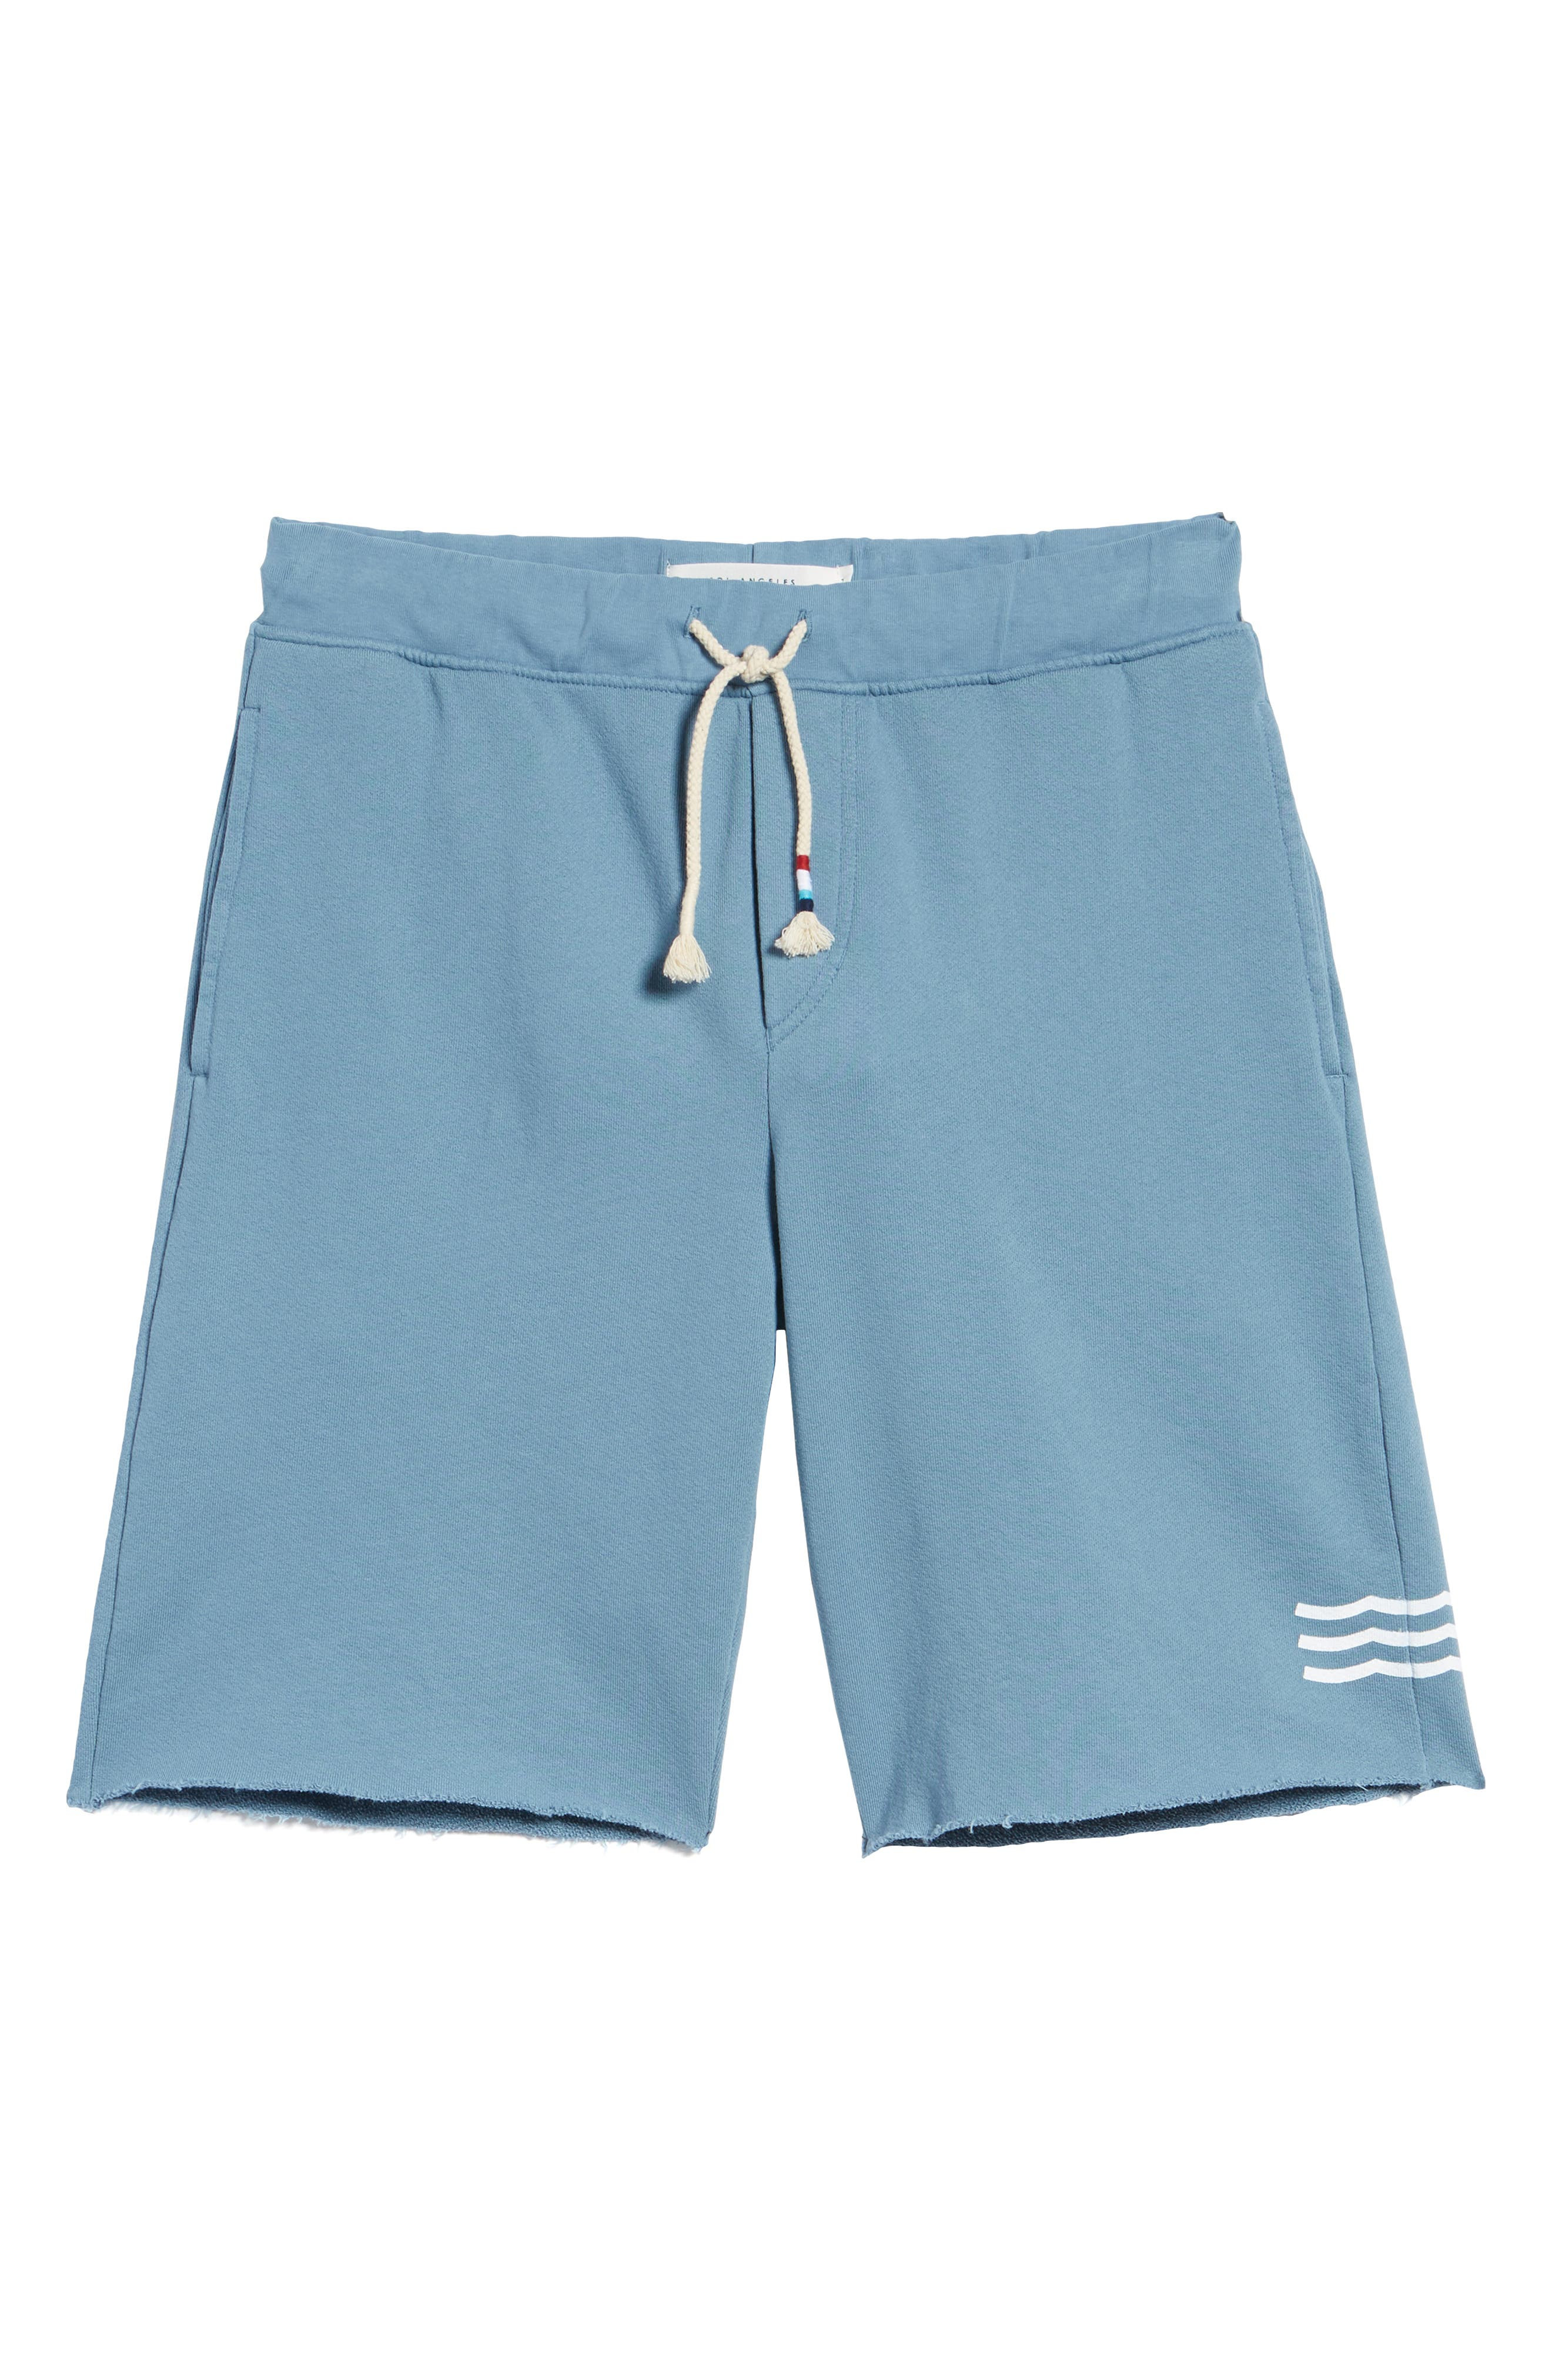 Essential Knit Shorts,                             Alternate thumbnail 6, color,                             400